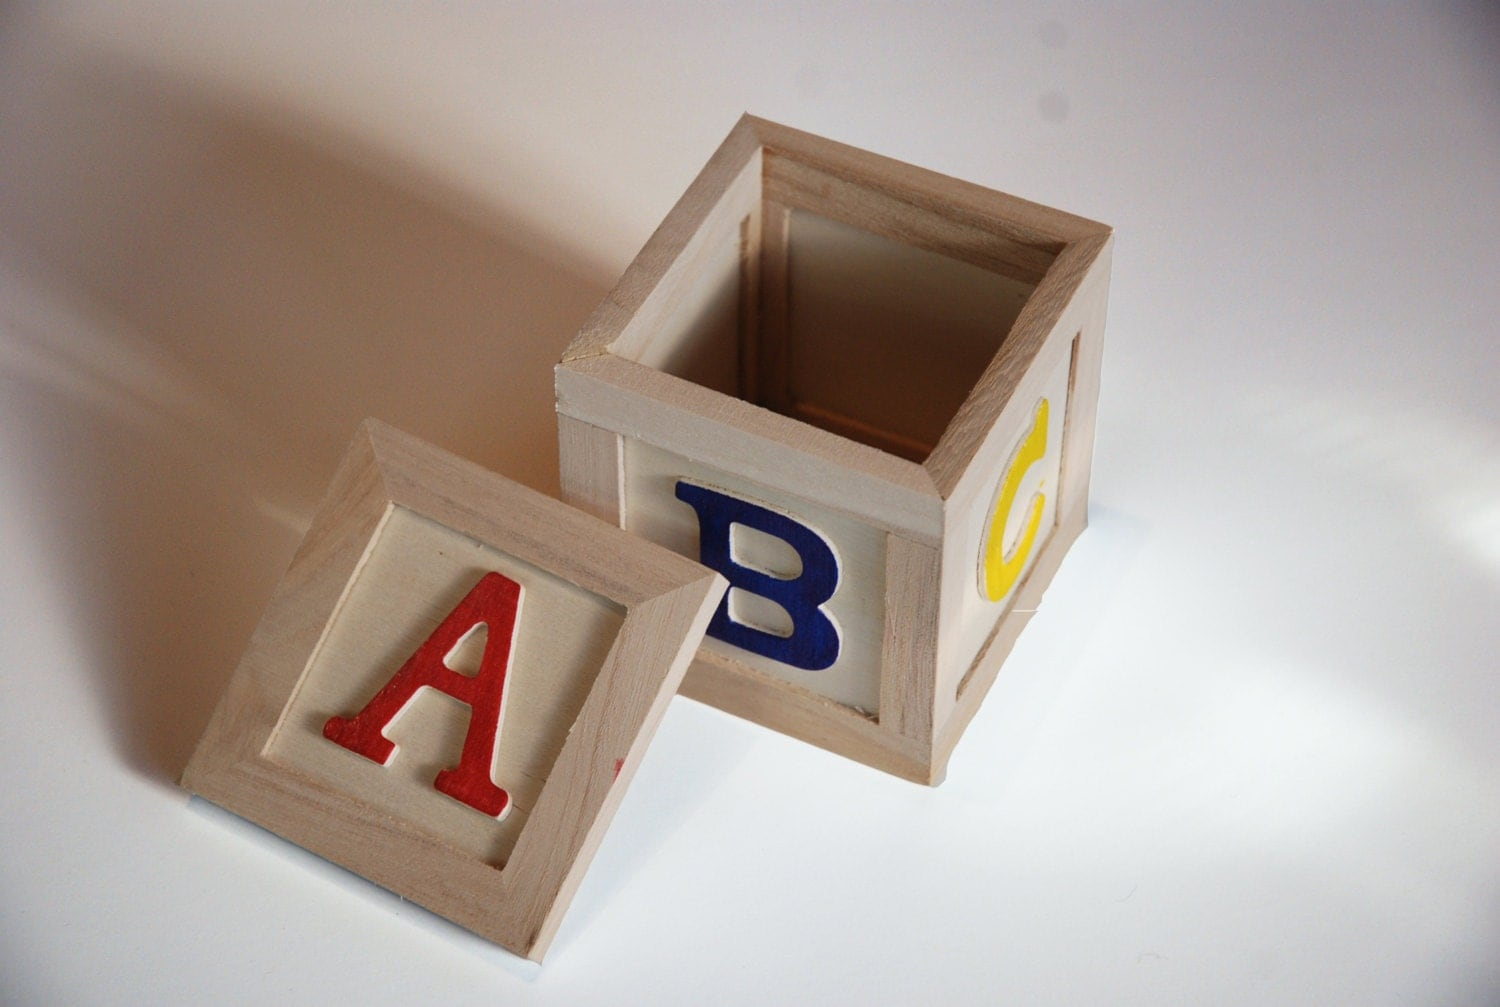 wooden toy block abc red blue yellow small storage box. Black Bedroom Furniture Sets. Home Design Ideas